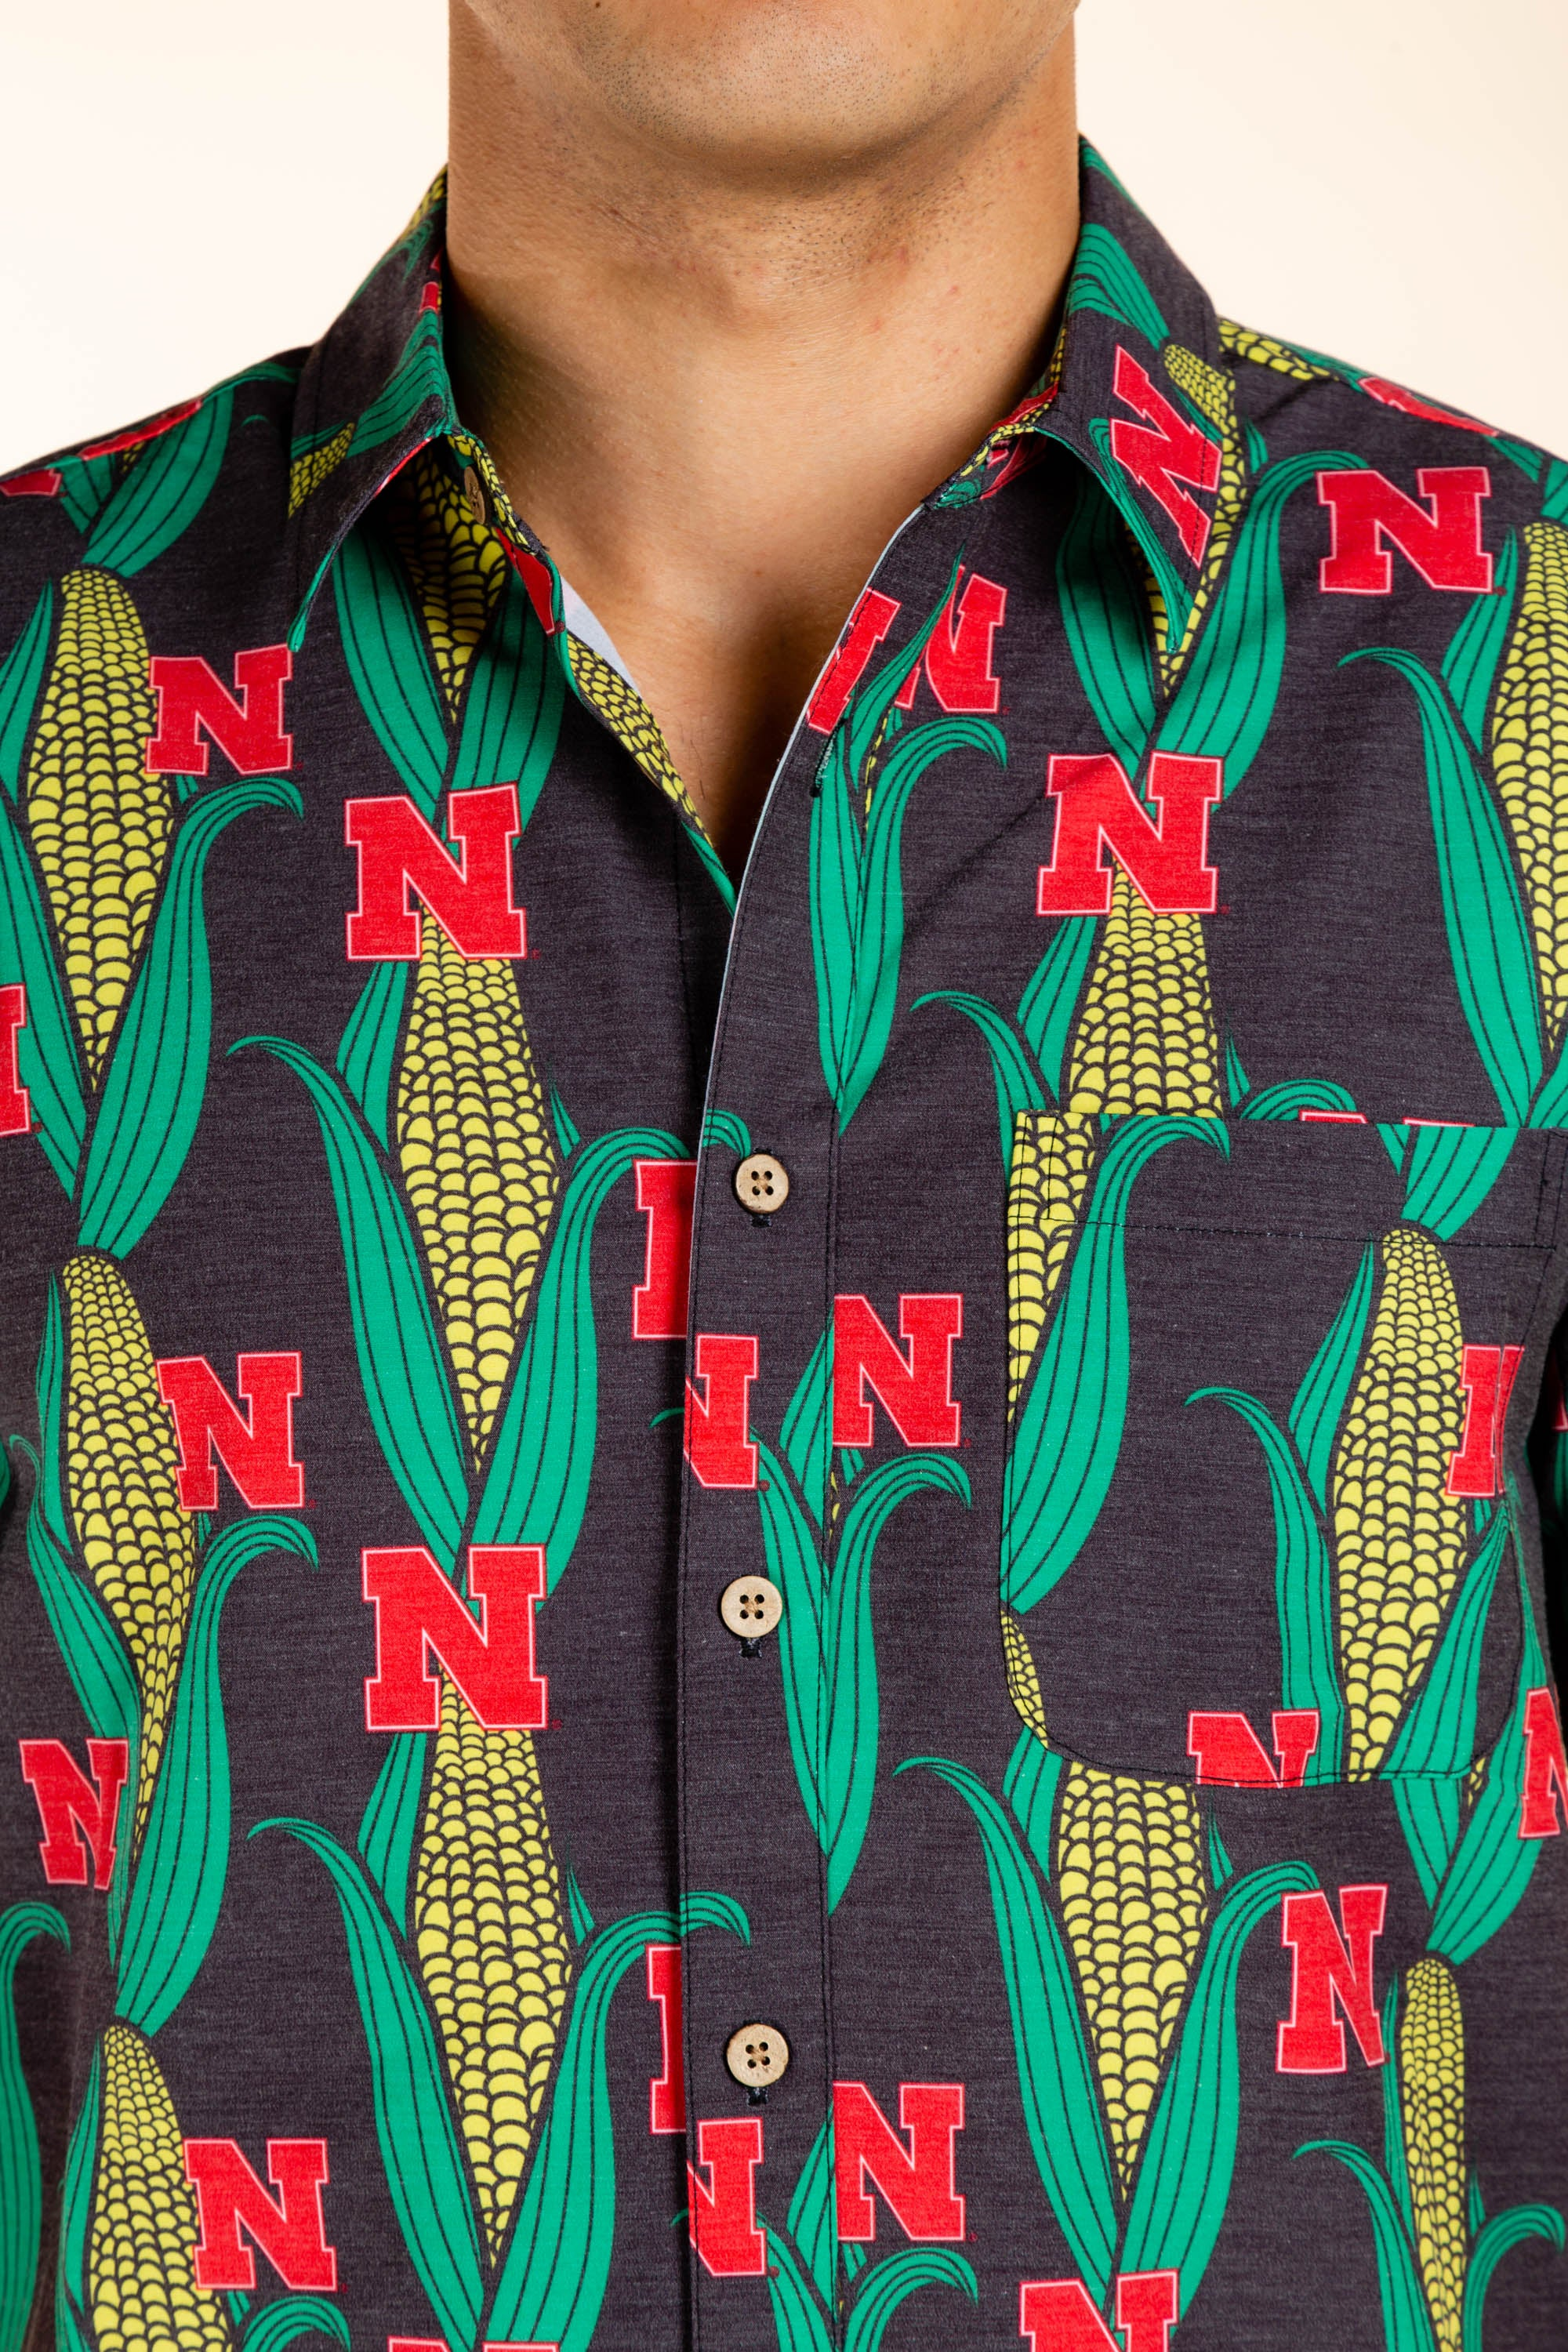 University of Nebraska Button Up Game Day Shirt